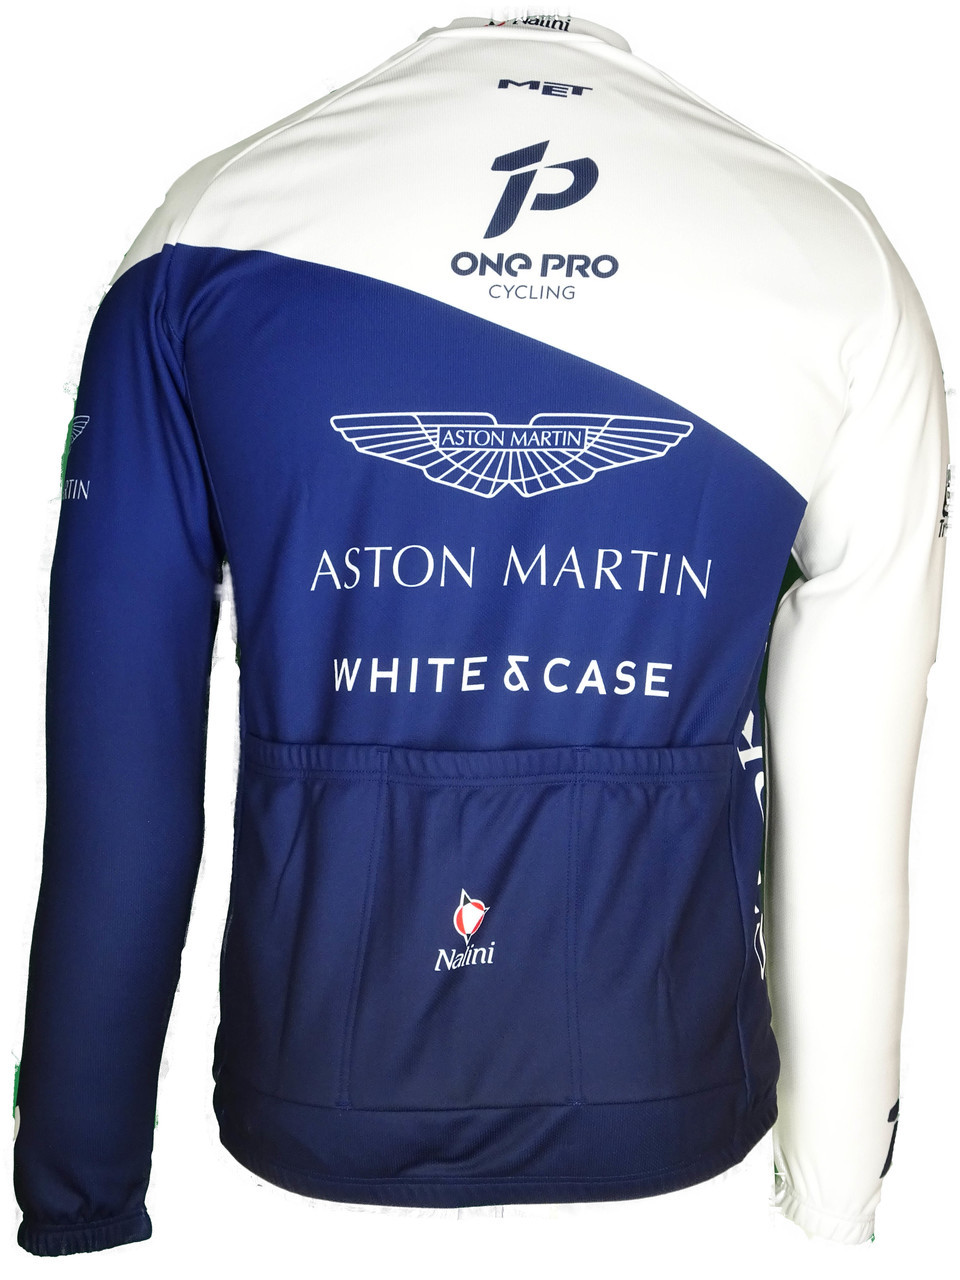 2018 One Pro Aston Martin Long Sleeve Jersey Rear